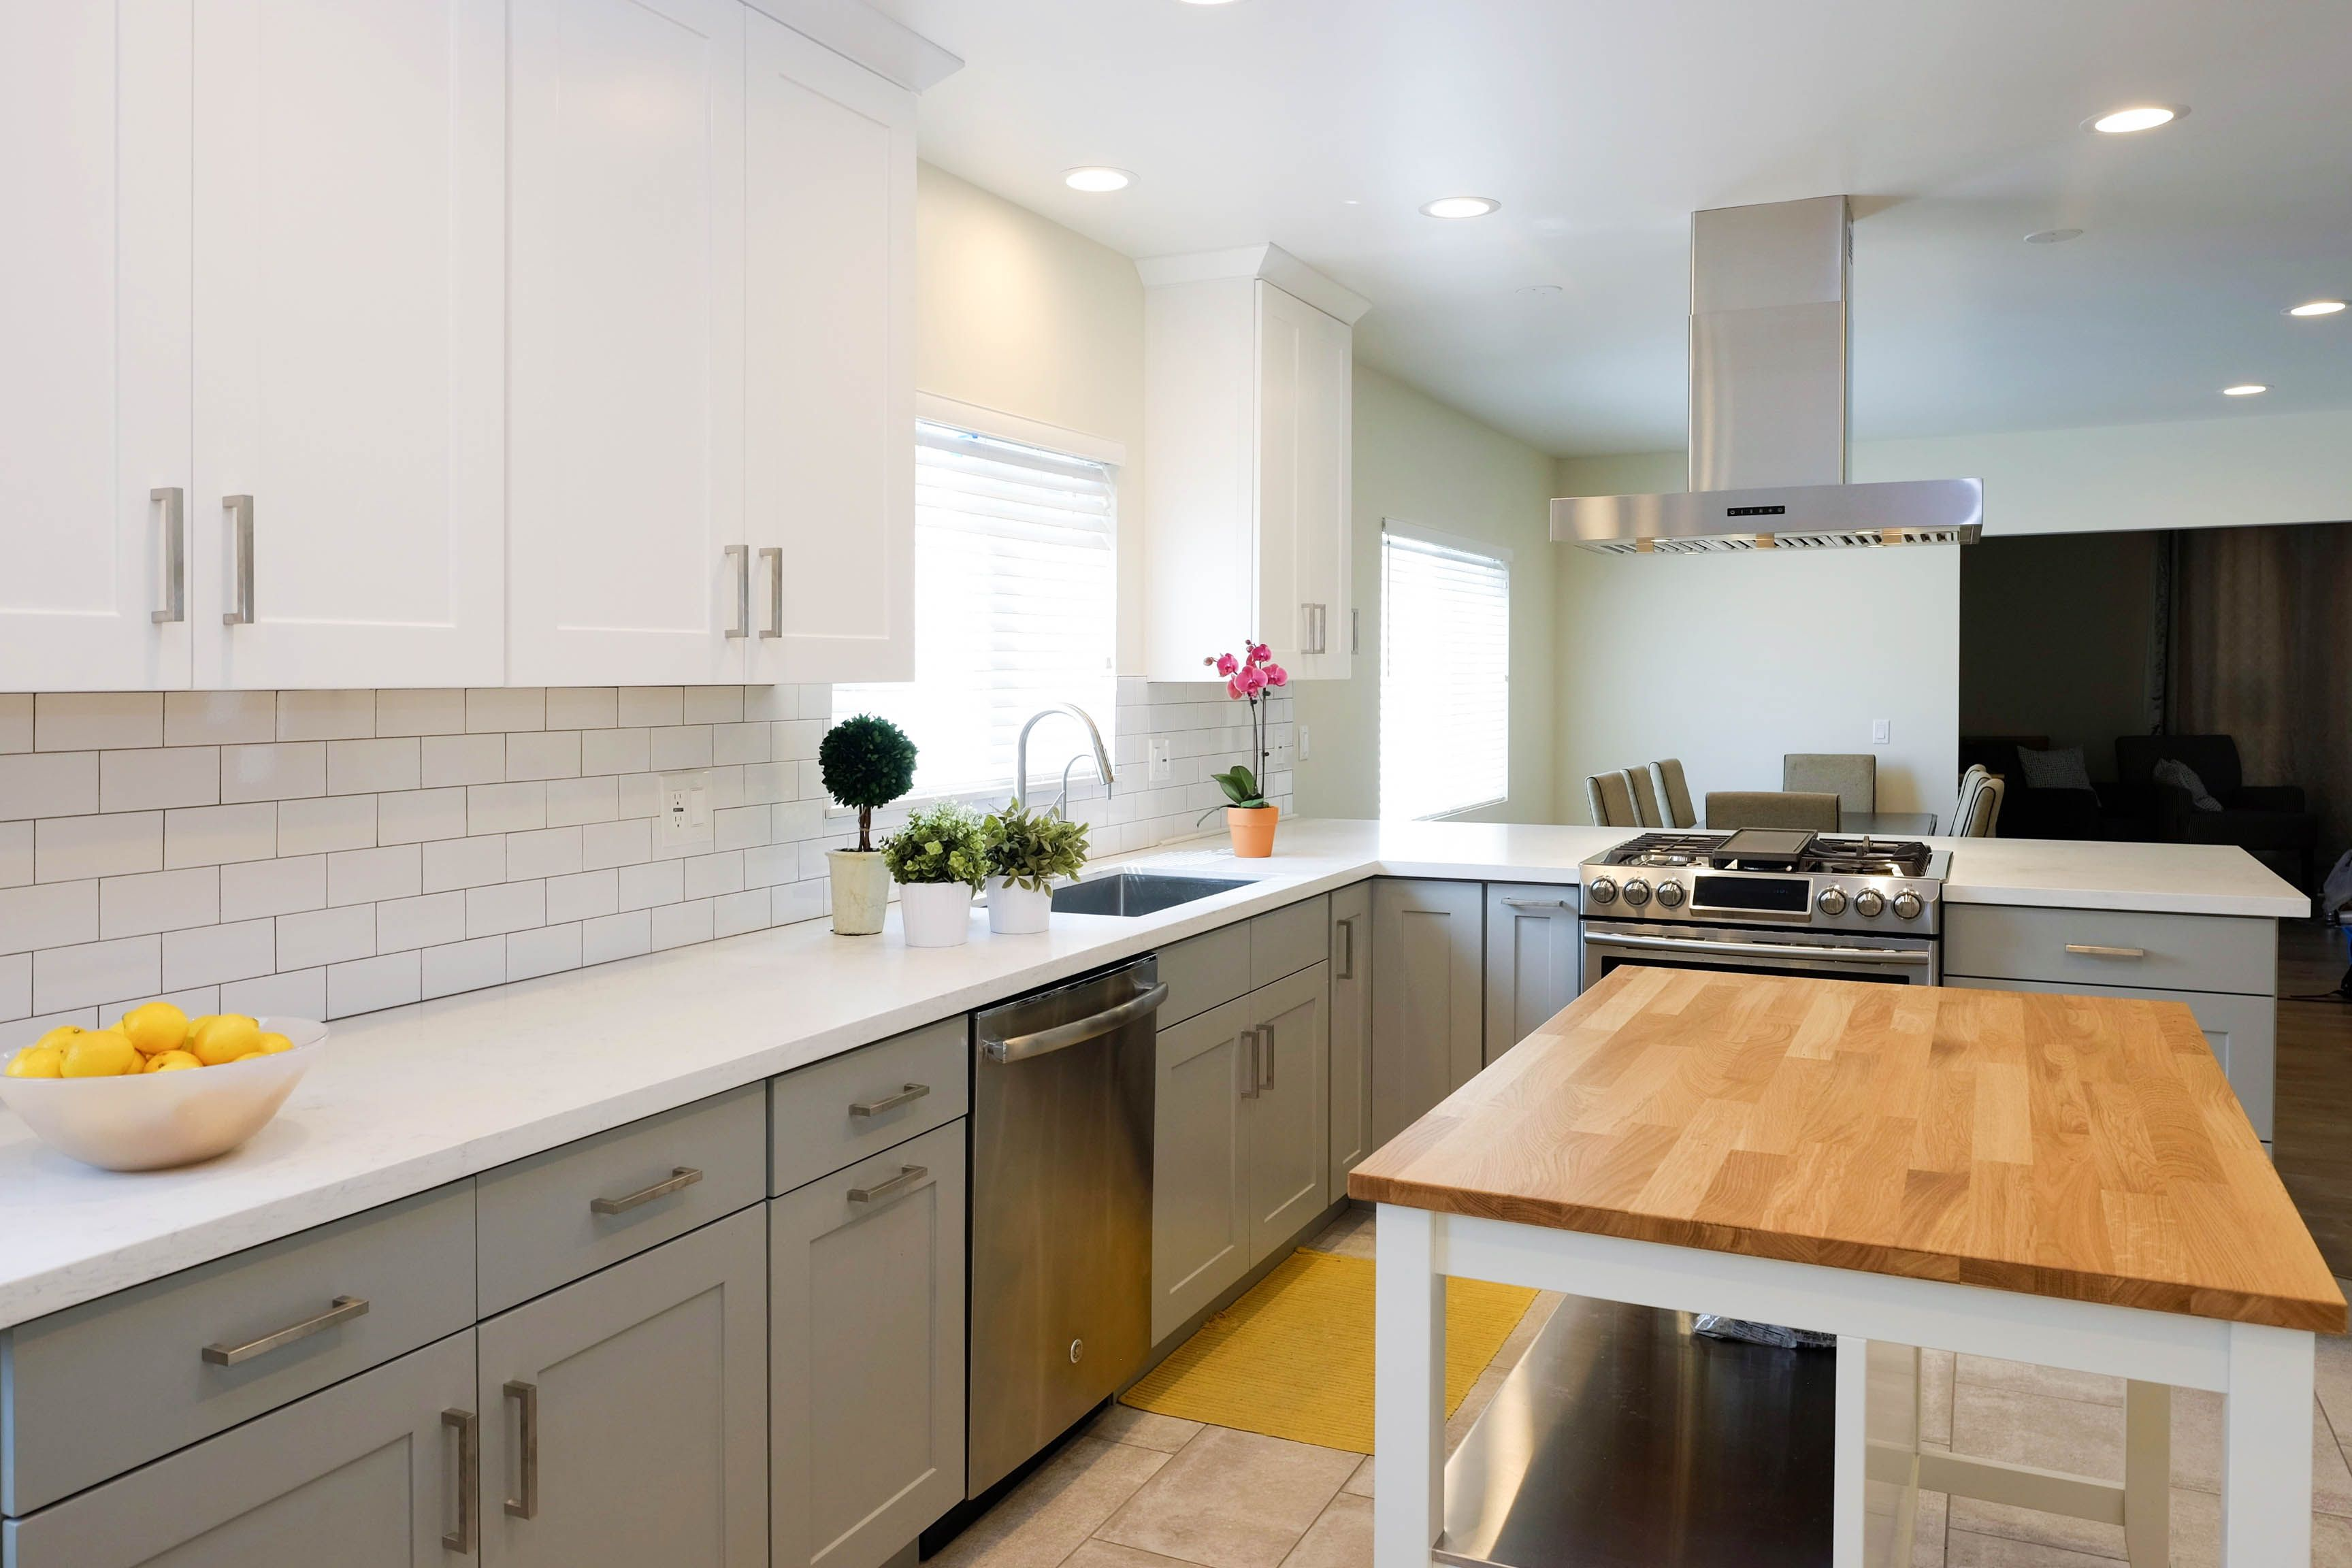 White And Grey Shaker Cabinets In A New Kitchen In Alhambra Ca Shaker Cabinets Kitchen Remodel Kitchen Cabinet Manufacturers Kitchen Rta Kitchen Cabinets